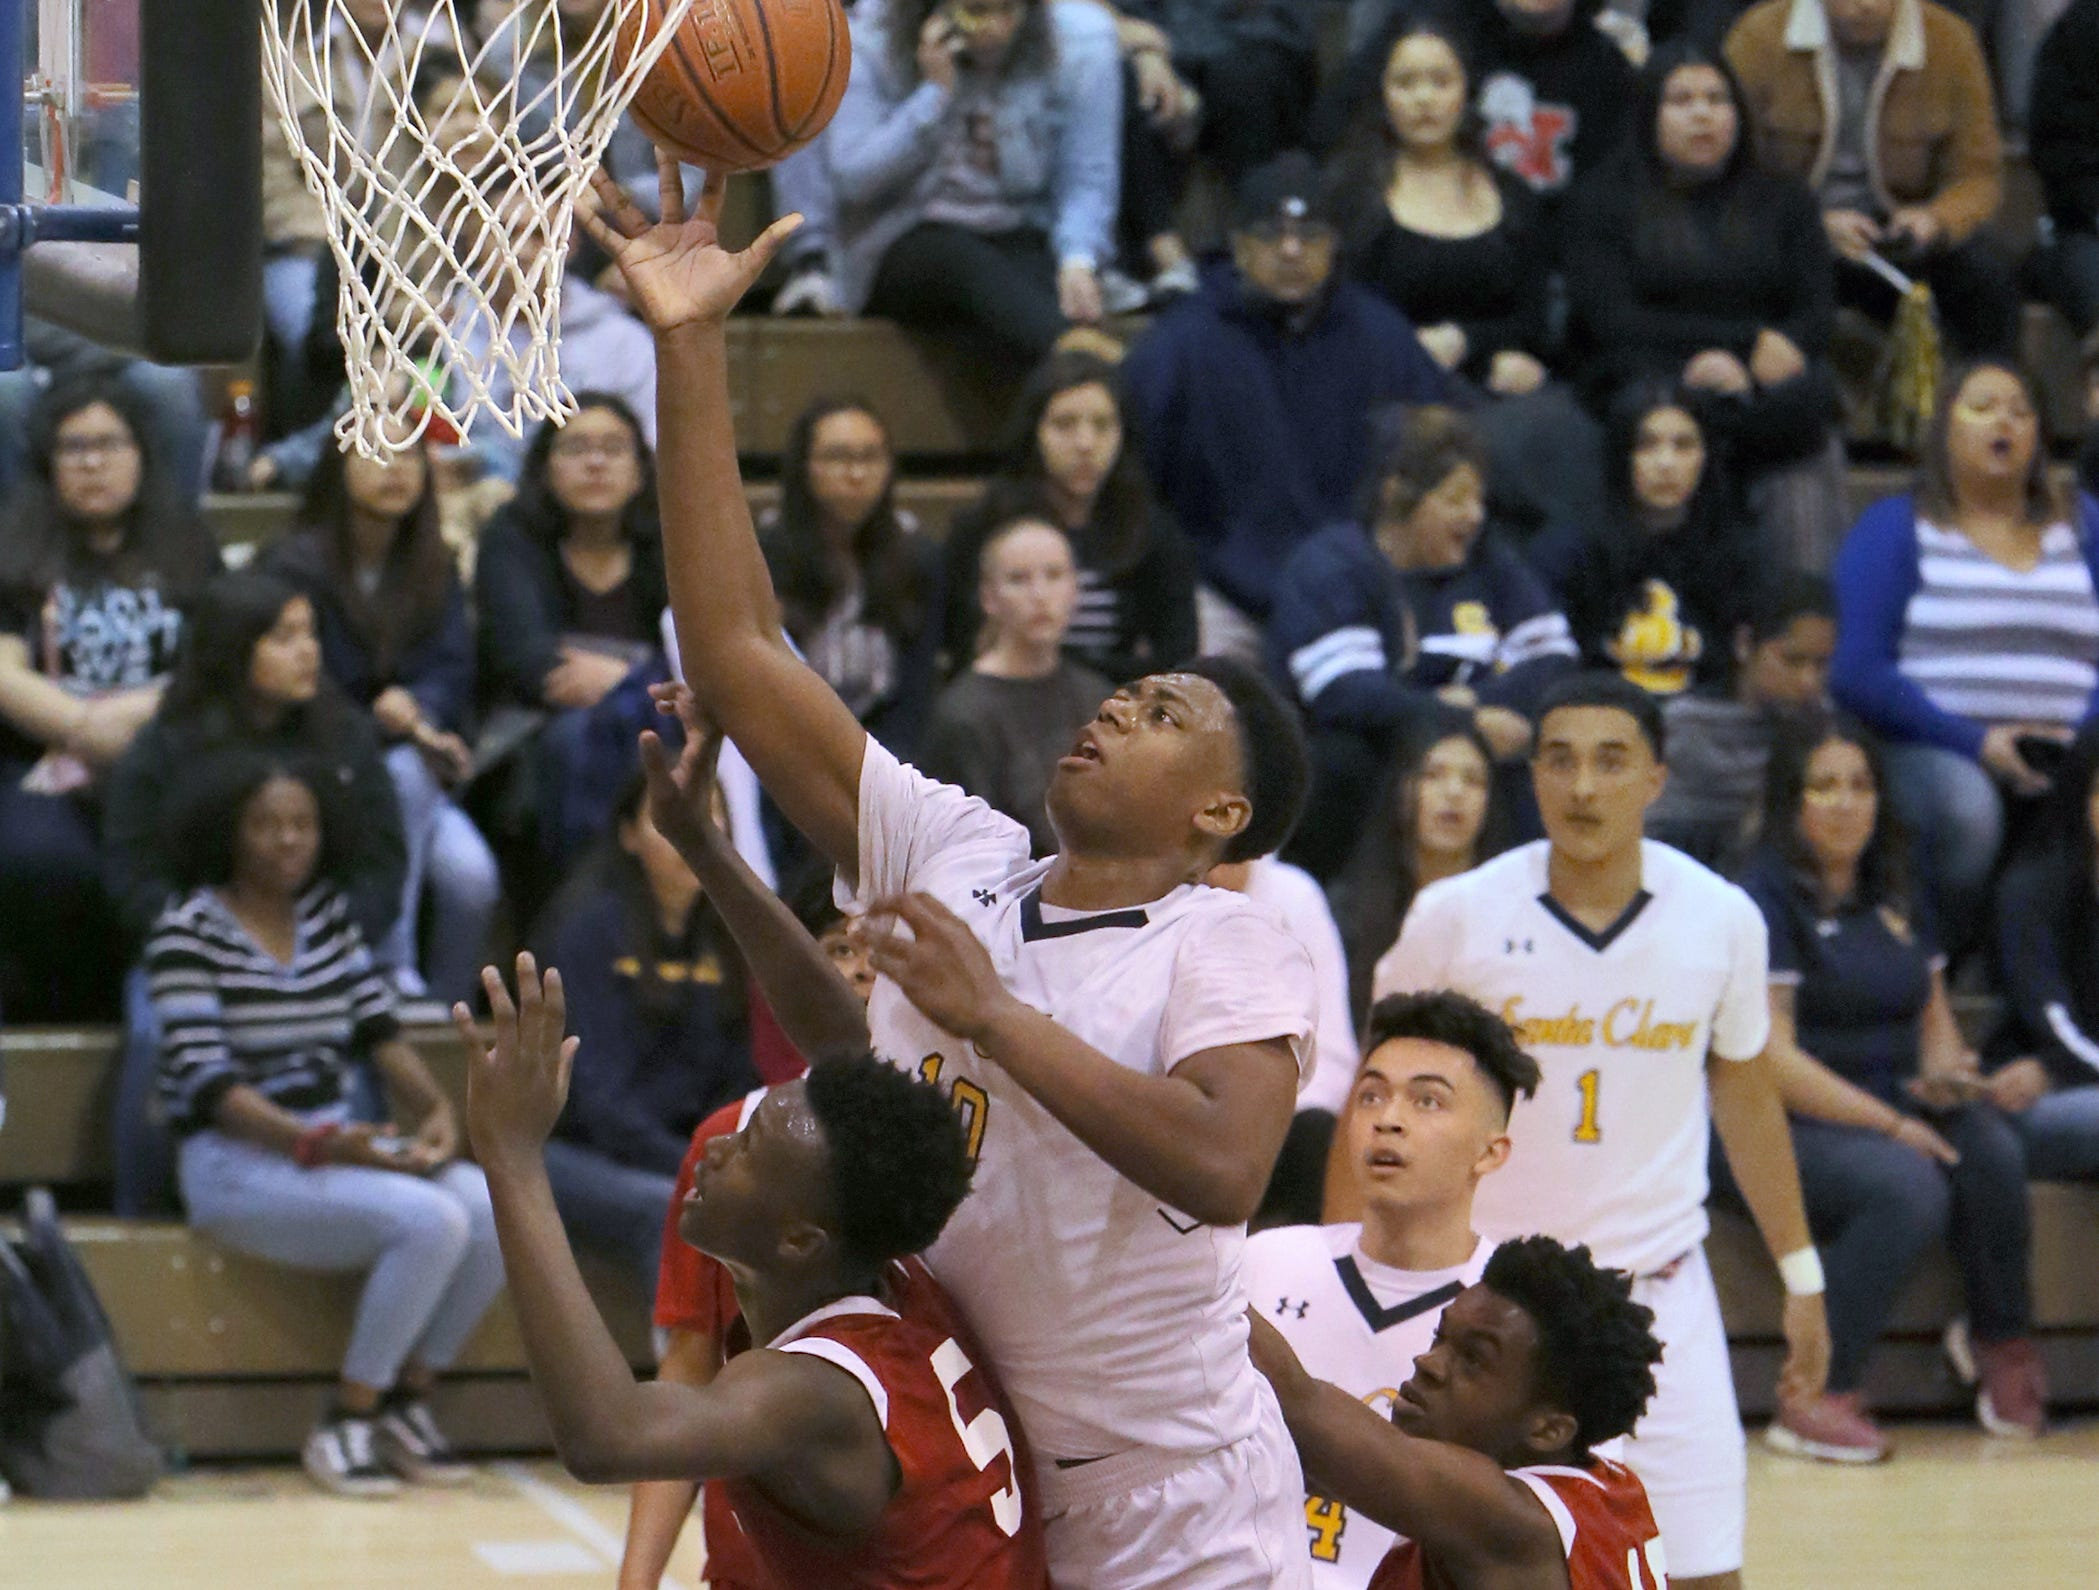 Santa Clara's Christian Oliver goes over Hueneme's Alex Asberry to score two of his 17 points during the Saints' 51-37 victory in a CIF-Southern Section Division 5AA semifinal Saturday night at Santa Clara High.